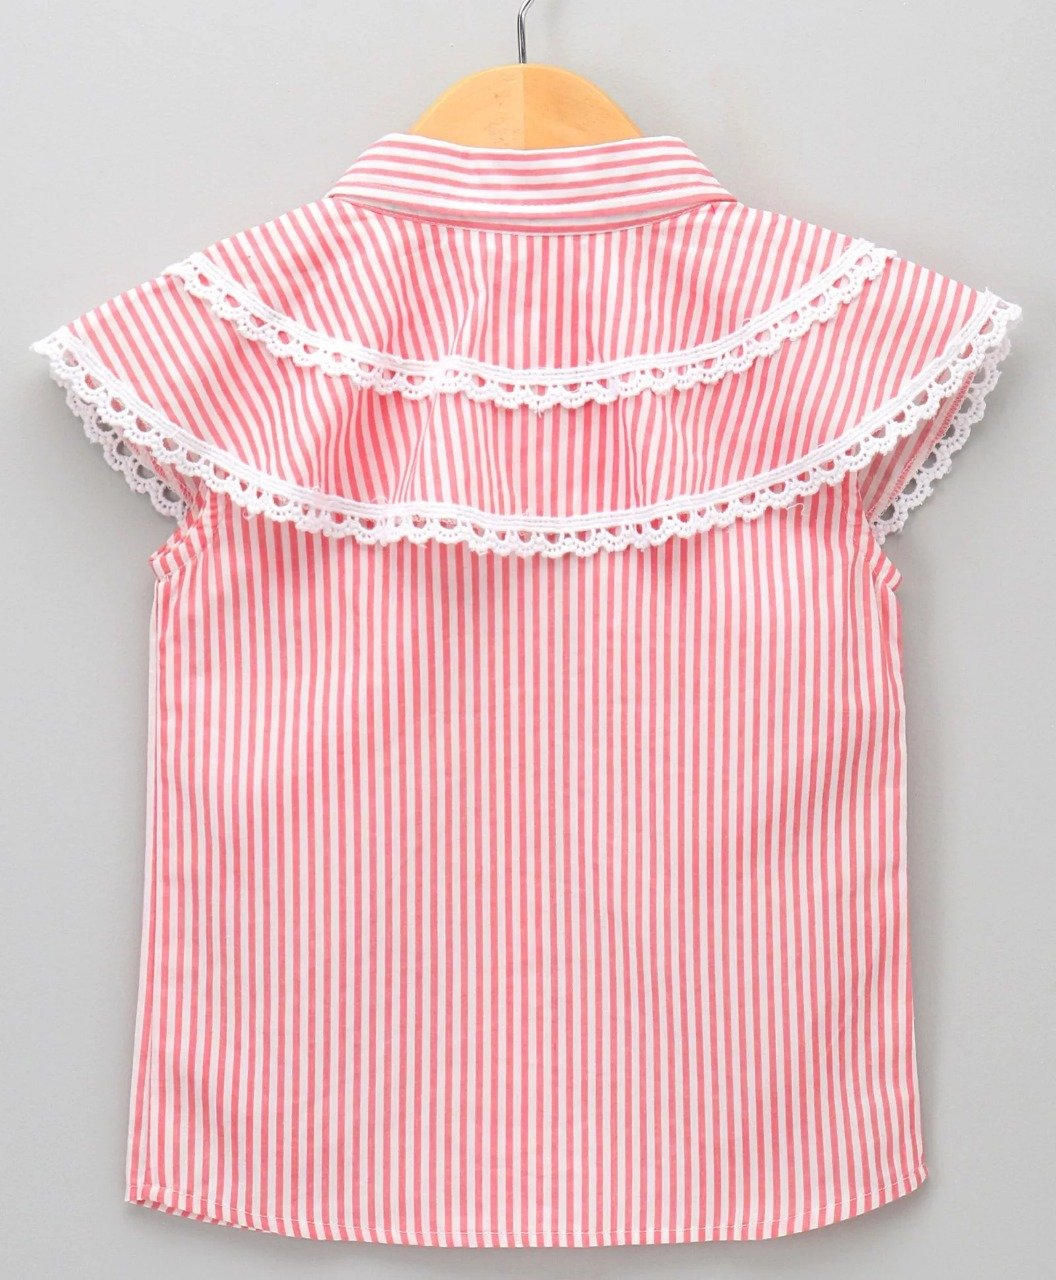 Stripe Shirt with Shoulder Flaps-Pink